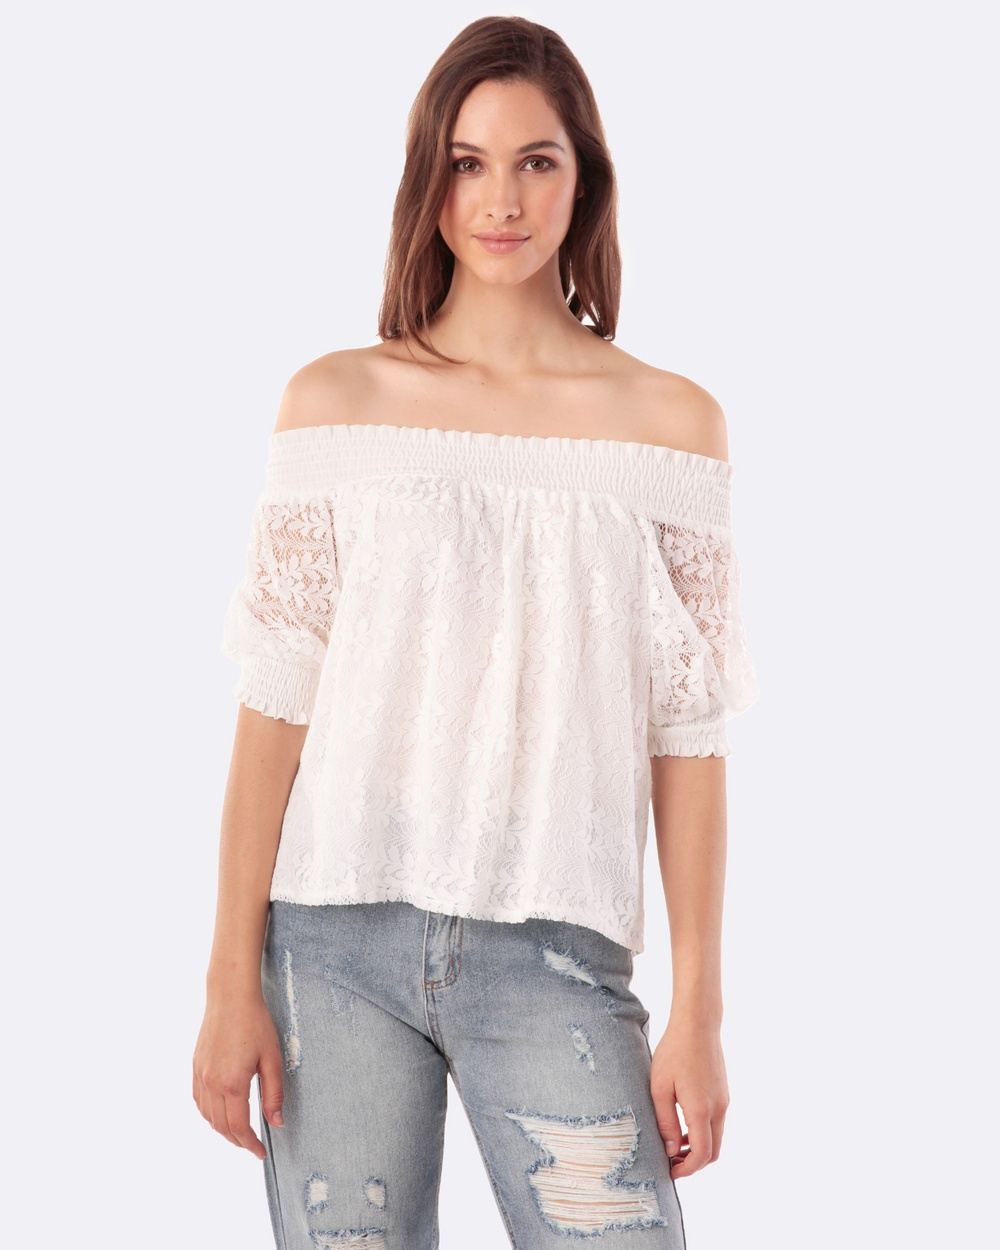 Amelius Celestine Top Tops White Celestine Top